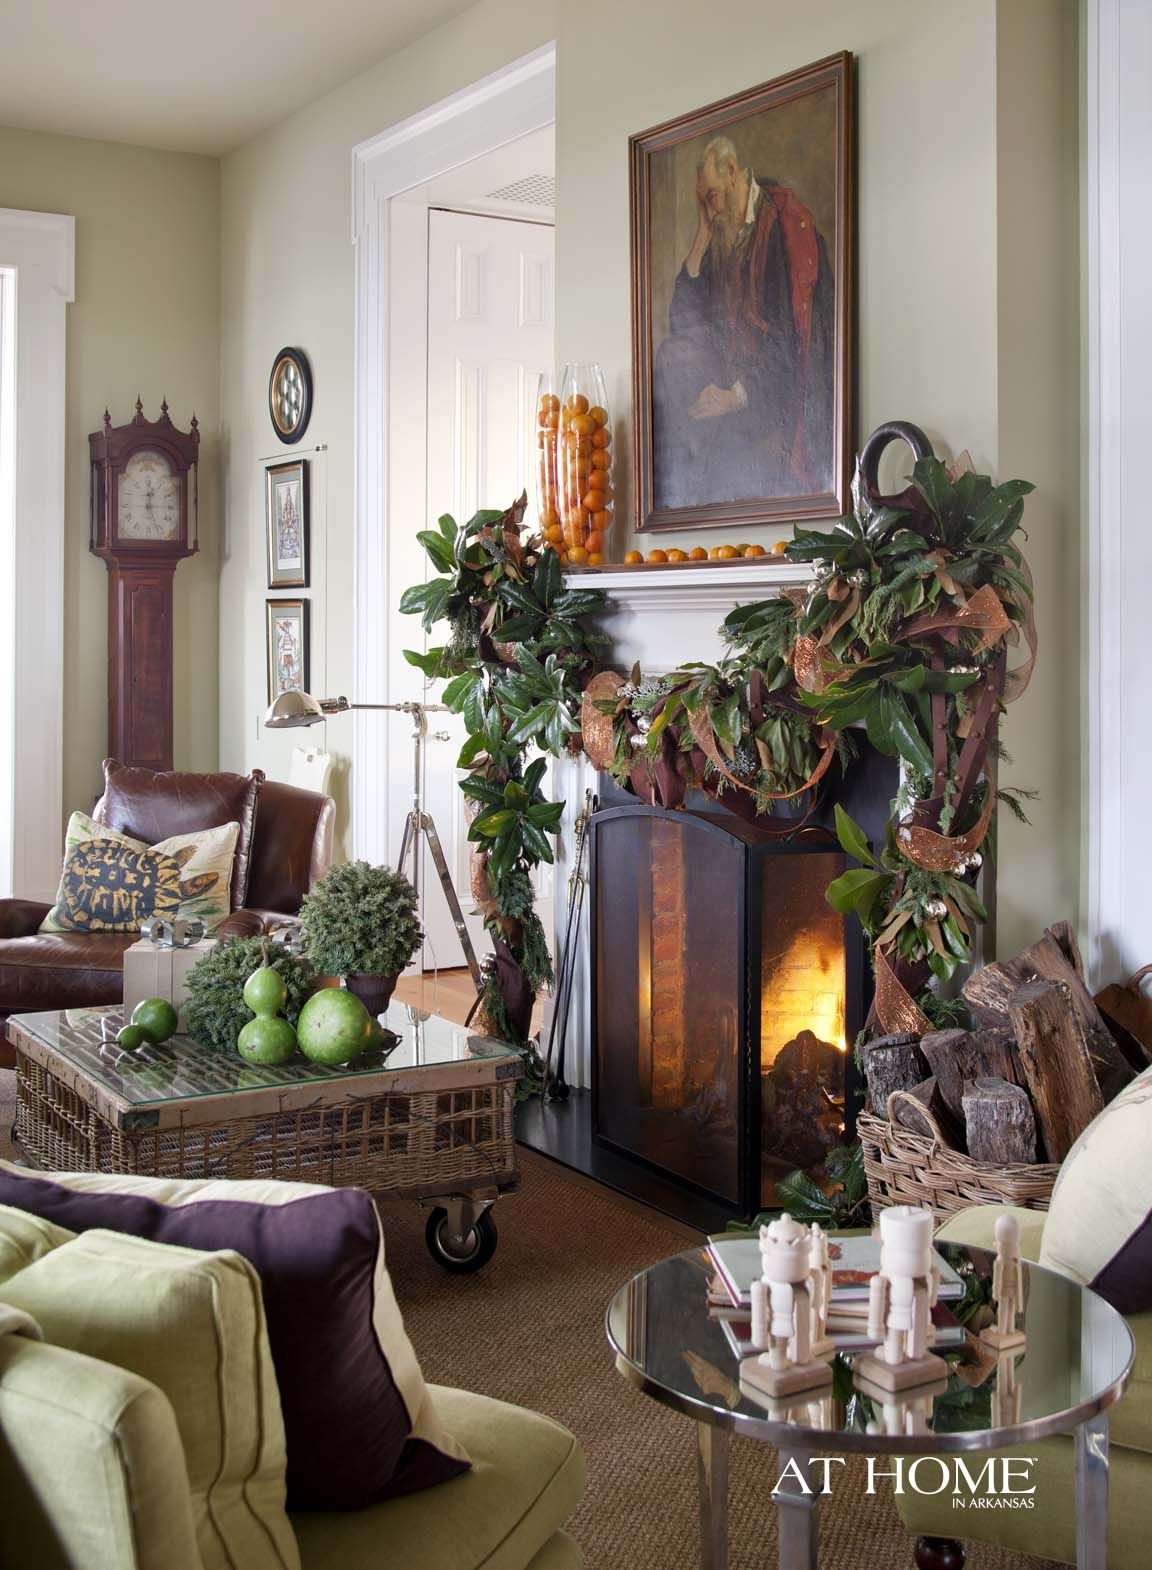 P. Allen Smith's Moss Mountain Farm, Photographed by Nancy Nolan for @A T Home in Arkansas Magazine  http://www.athomearkansas.com/article/garden-home-holidays